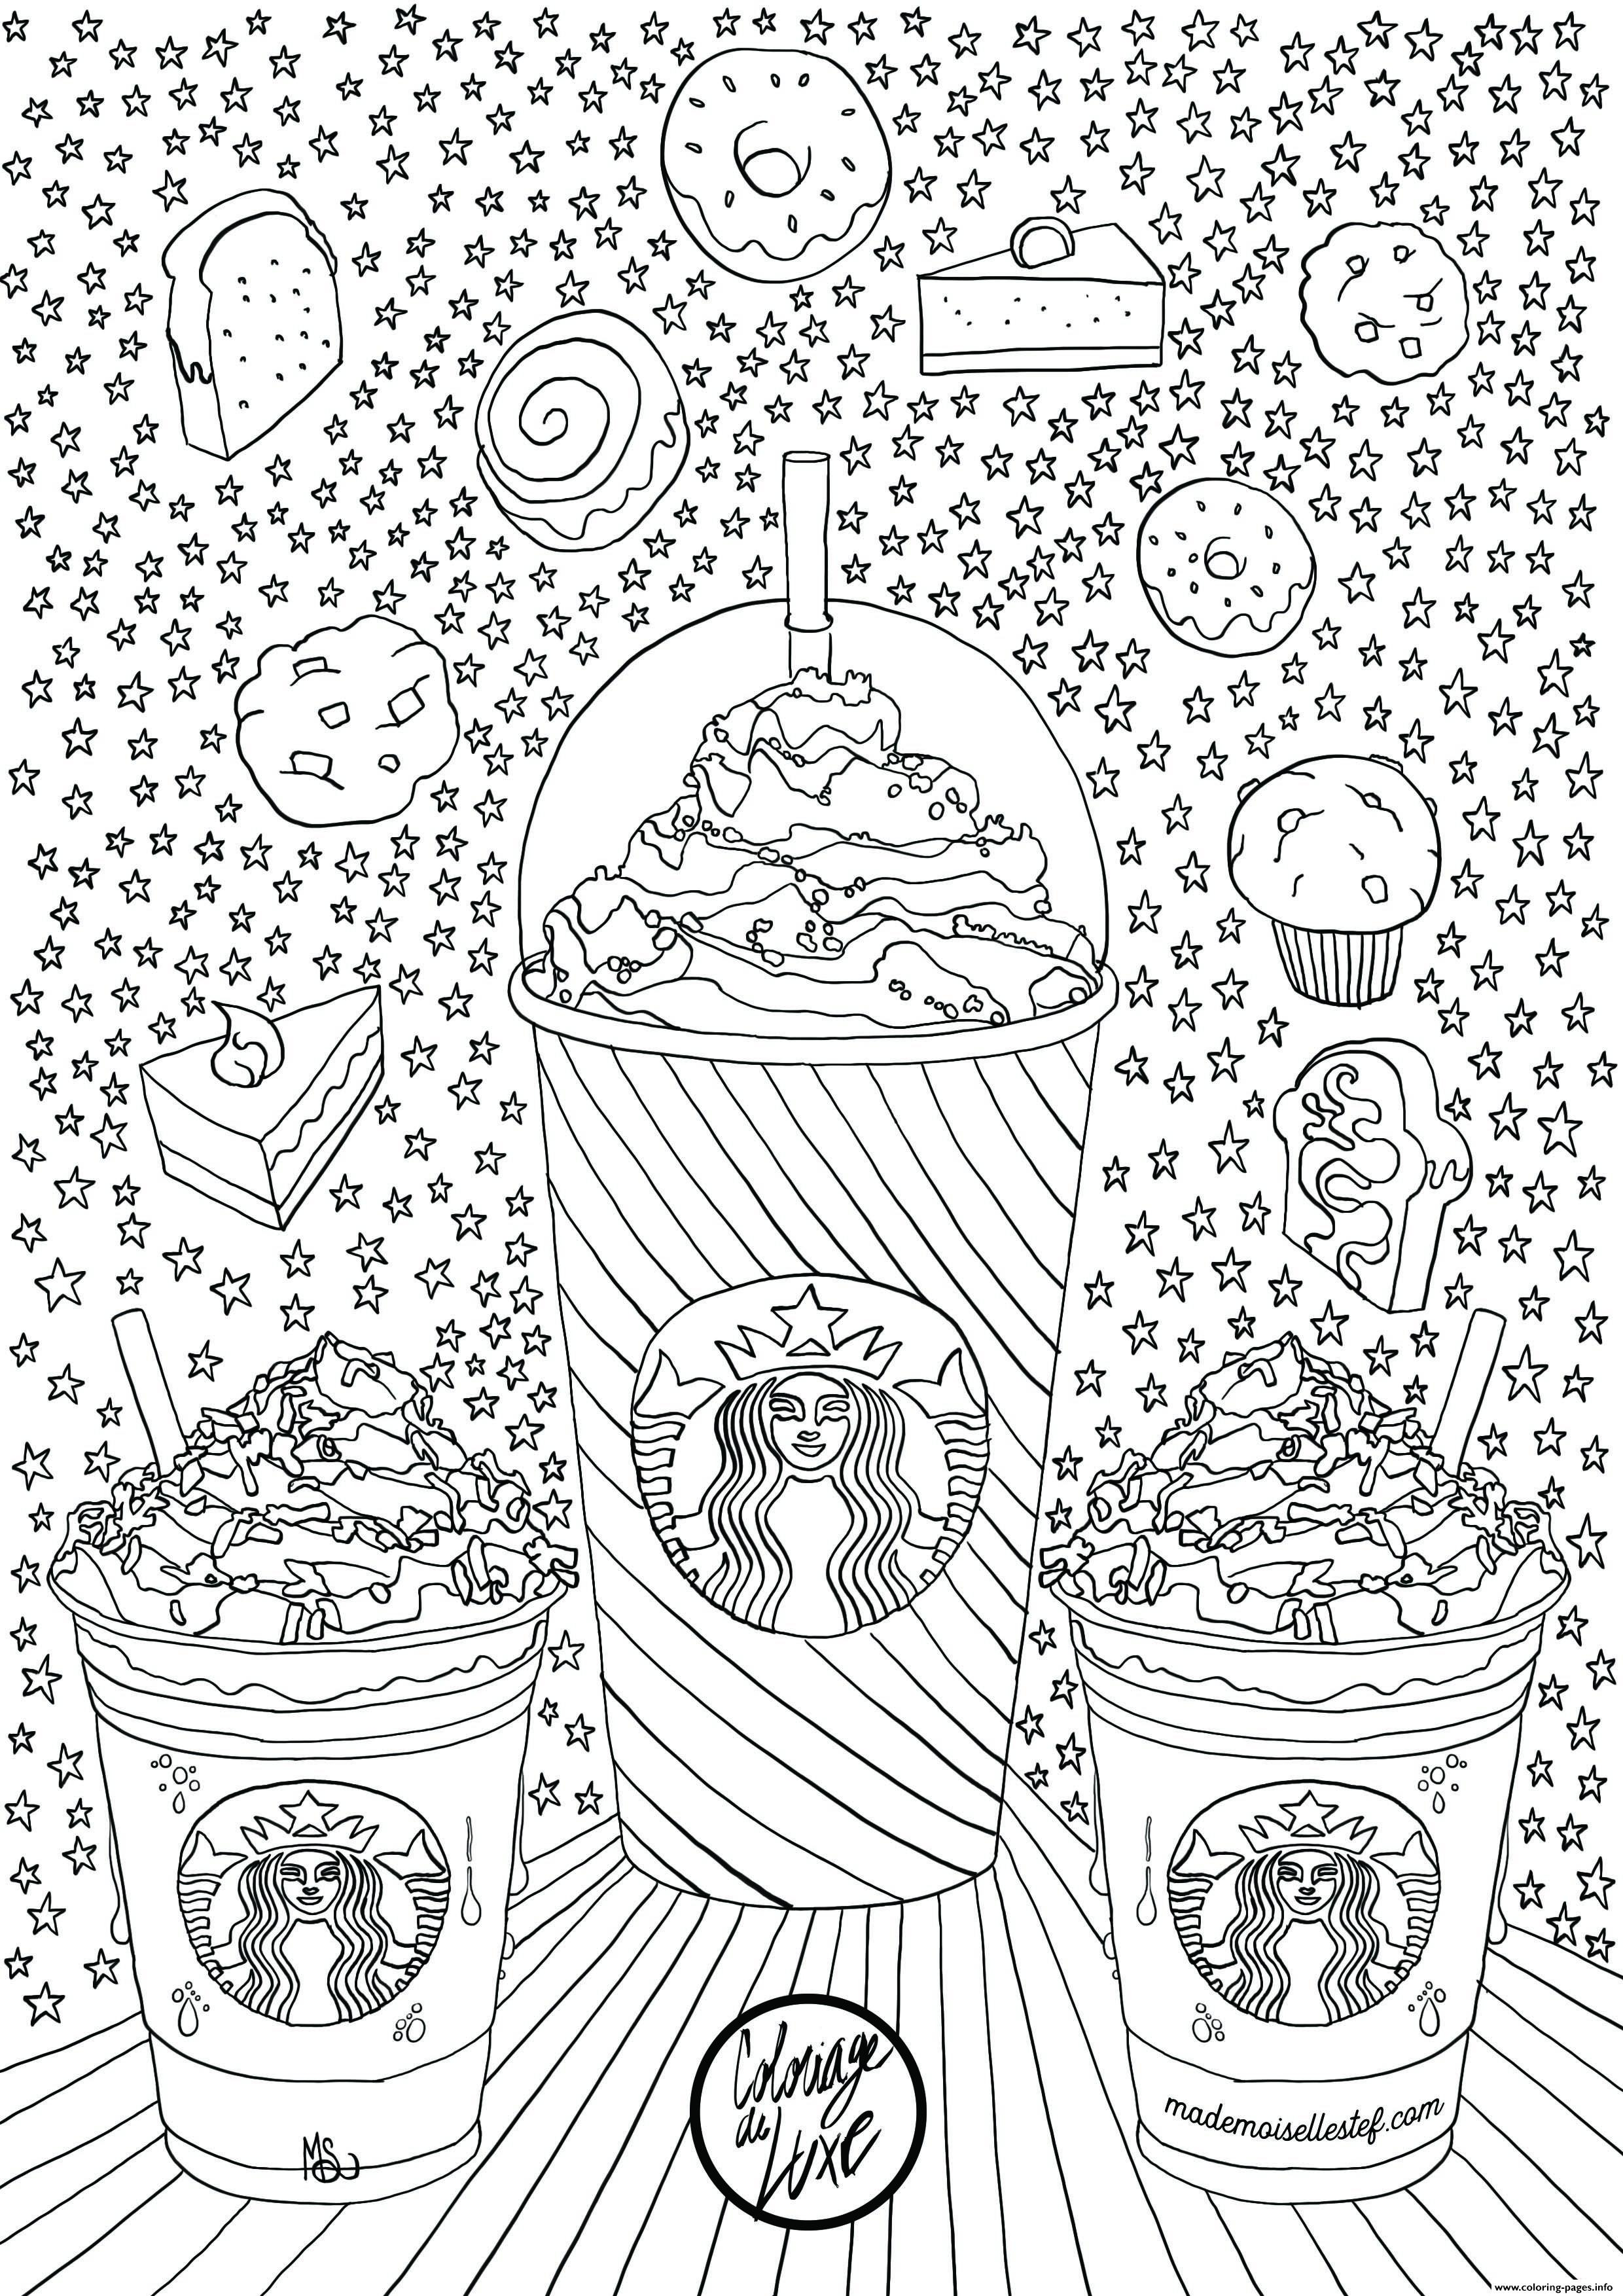 Starbucks Frappuccino Cakes Donuts Adults Coloring Pages